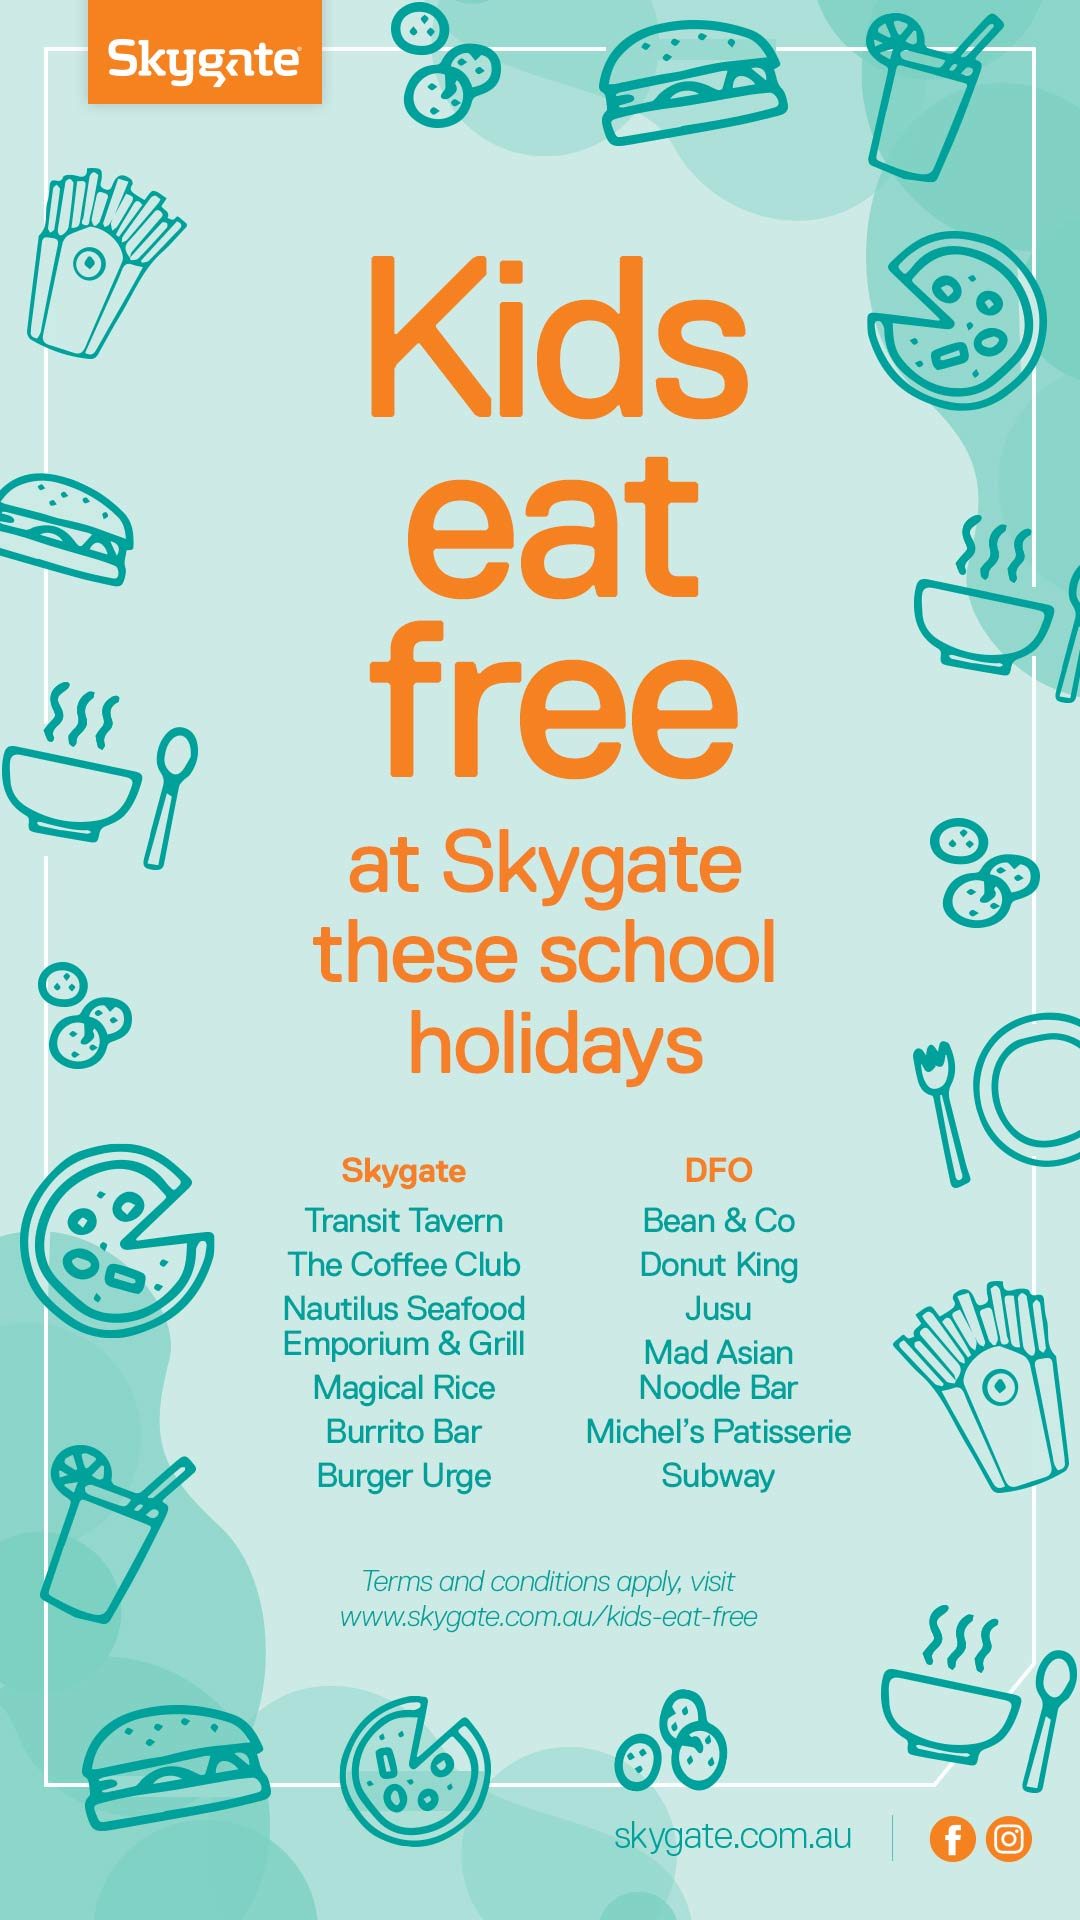 Kids eat free Skygate school holidays